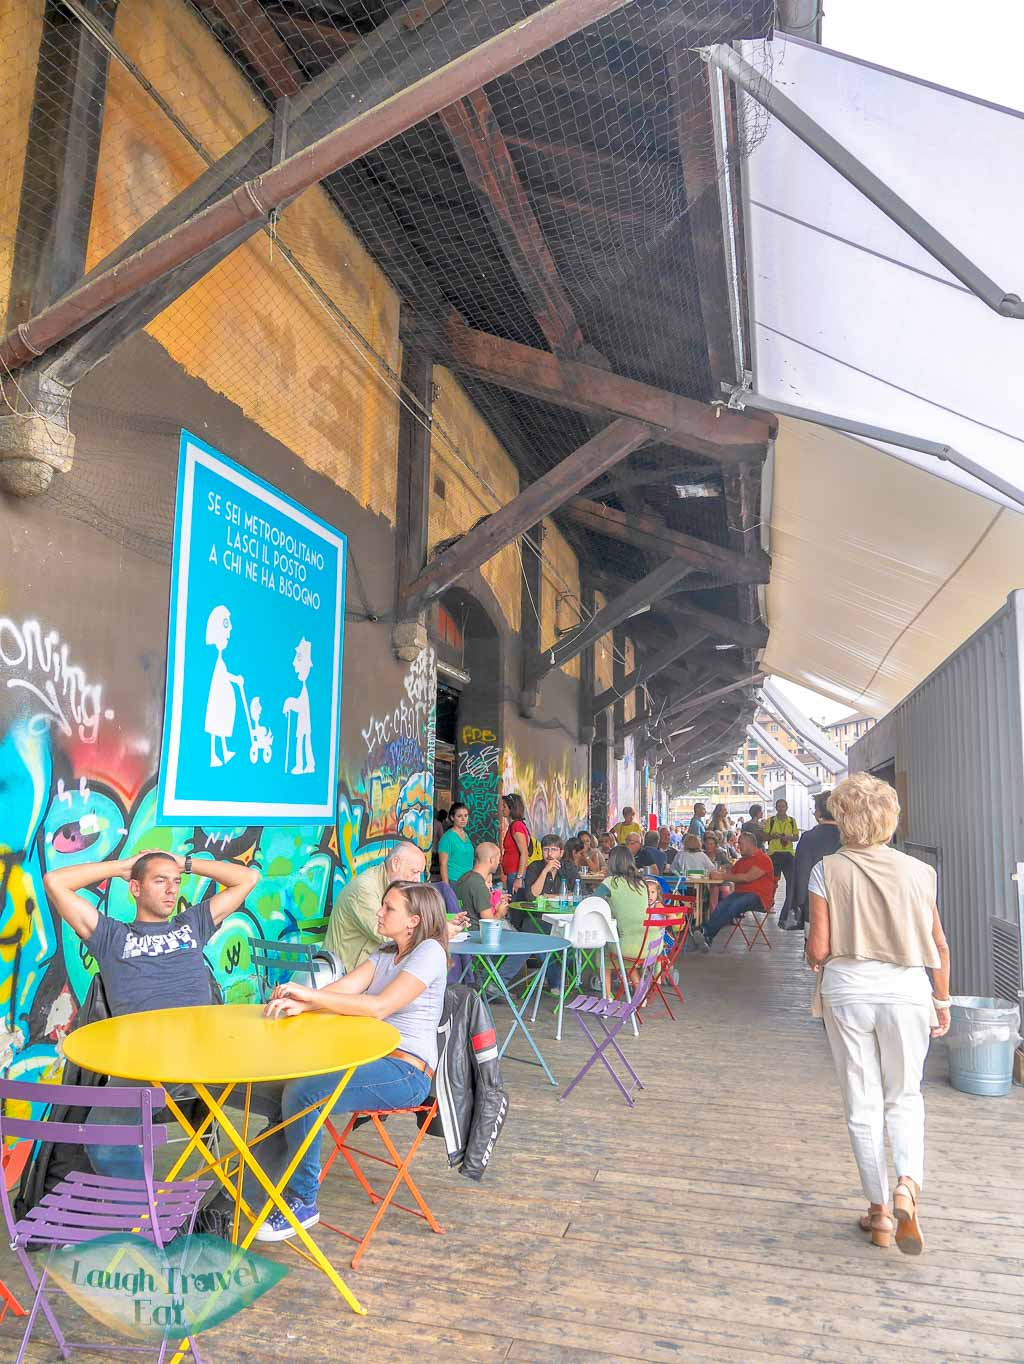 Mercato Metropolitano, Milan, Italy - Laugh Travel Eat